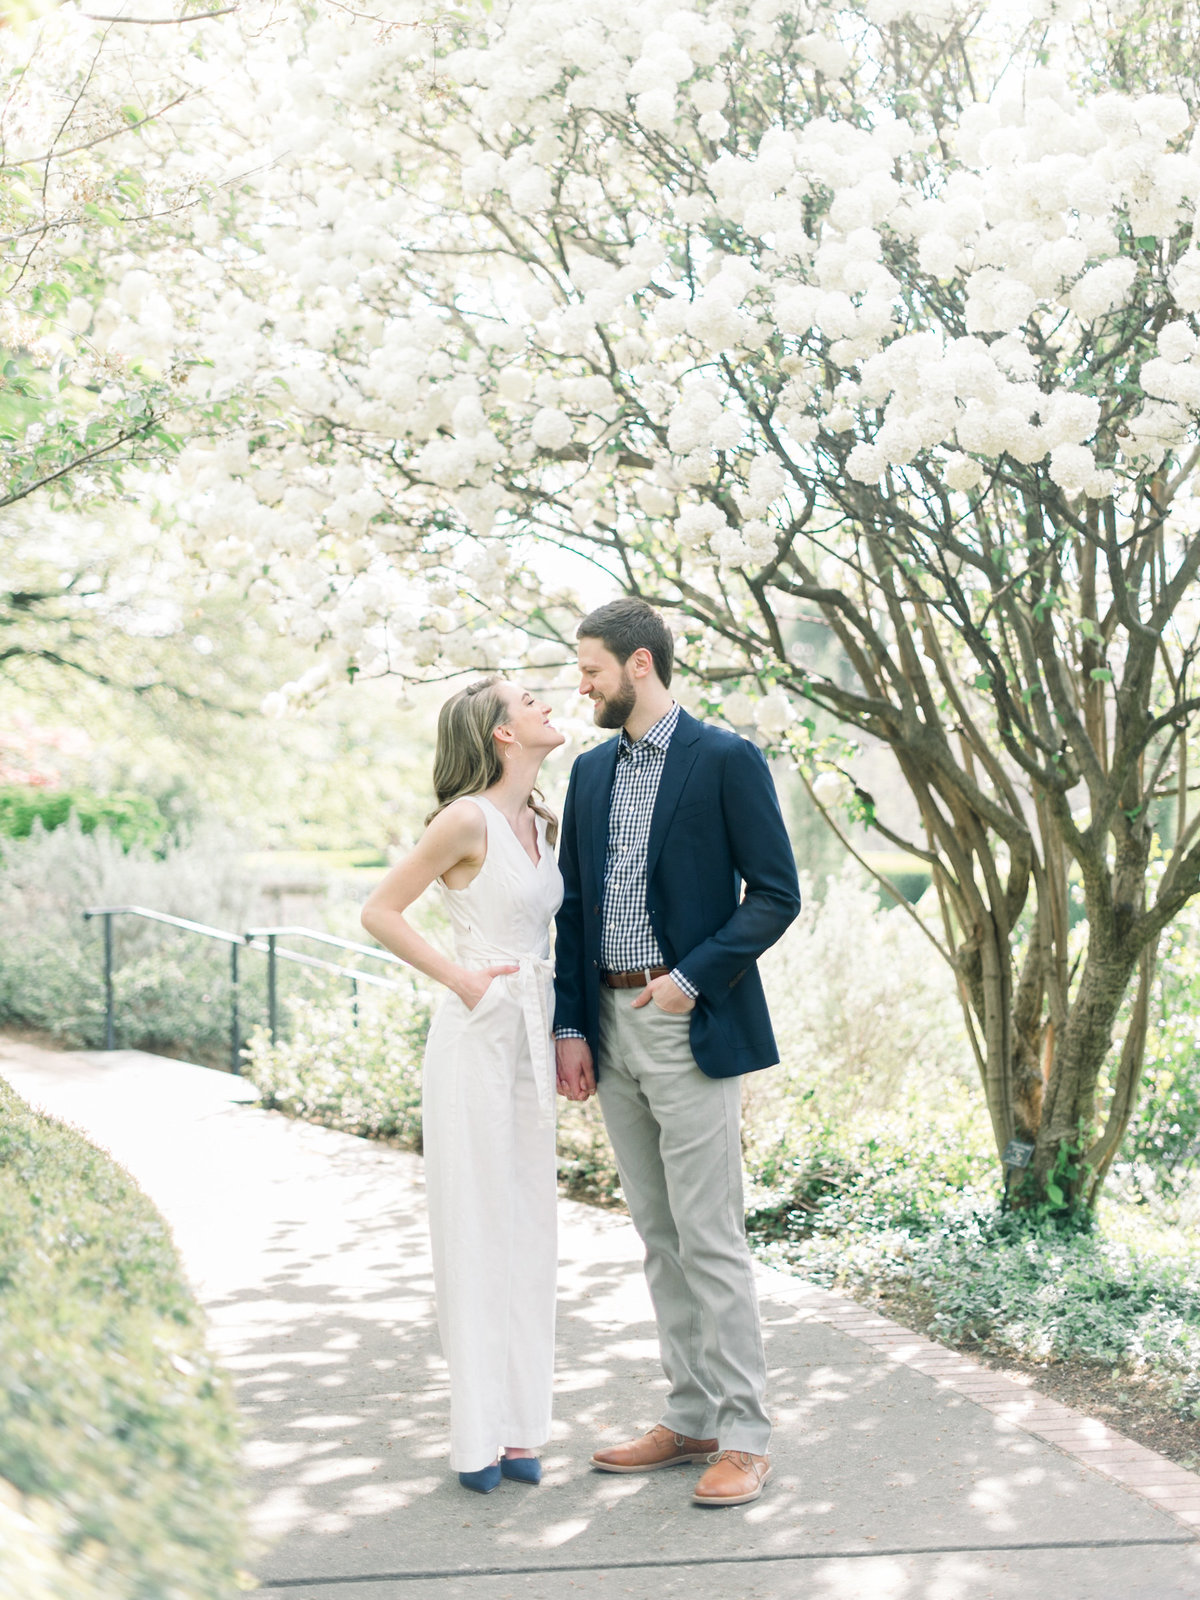 Courtney Hanson Photography - Dallas Spring Engagement Photos at Dallas Arboretum-2748